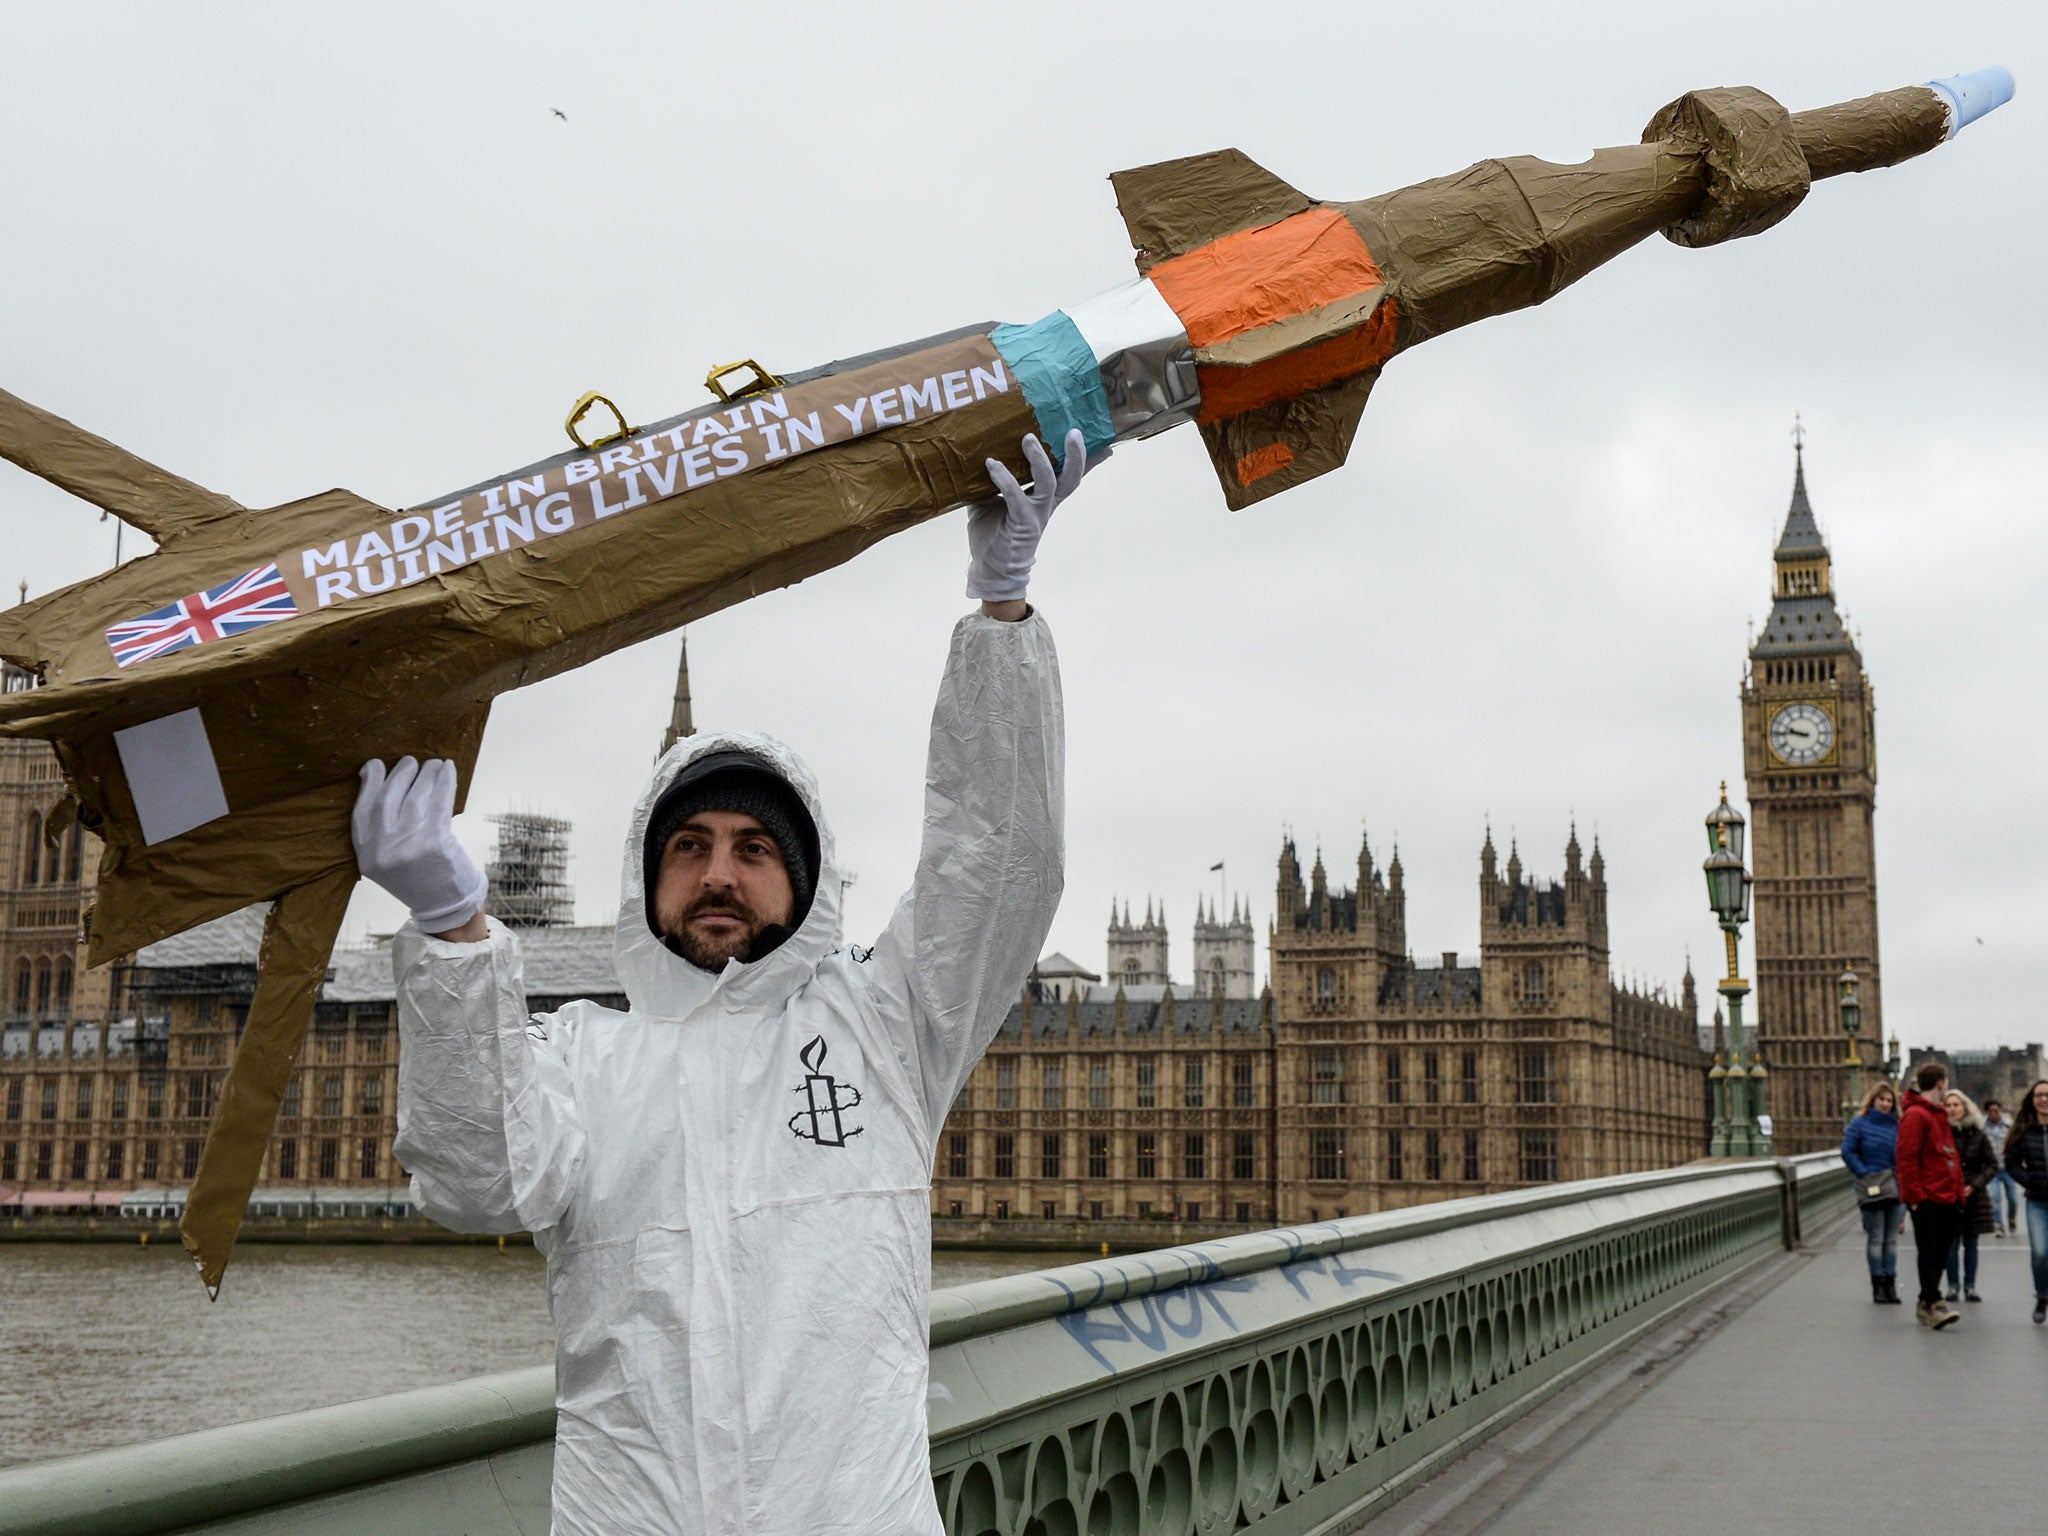 UK arms sales to Saudi Arabia unlawful, Court of Appeal rules